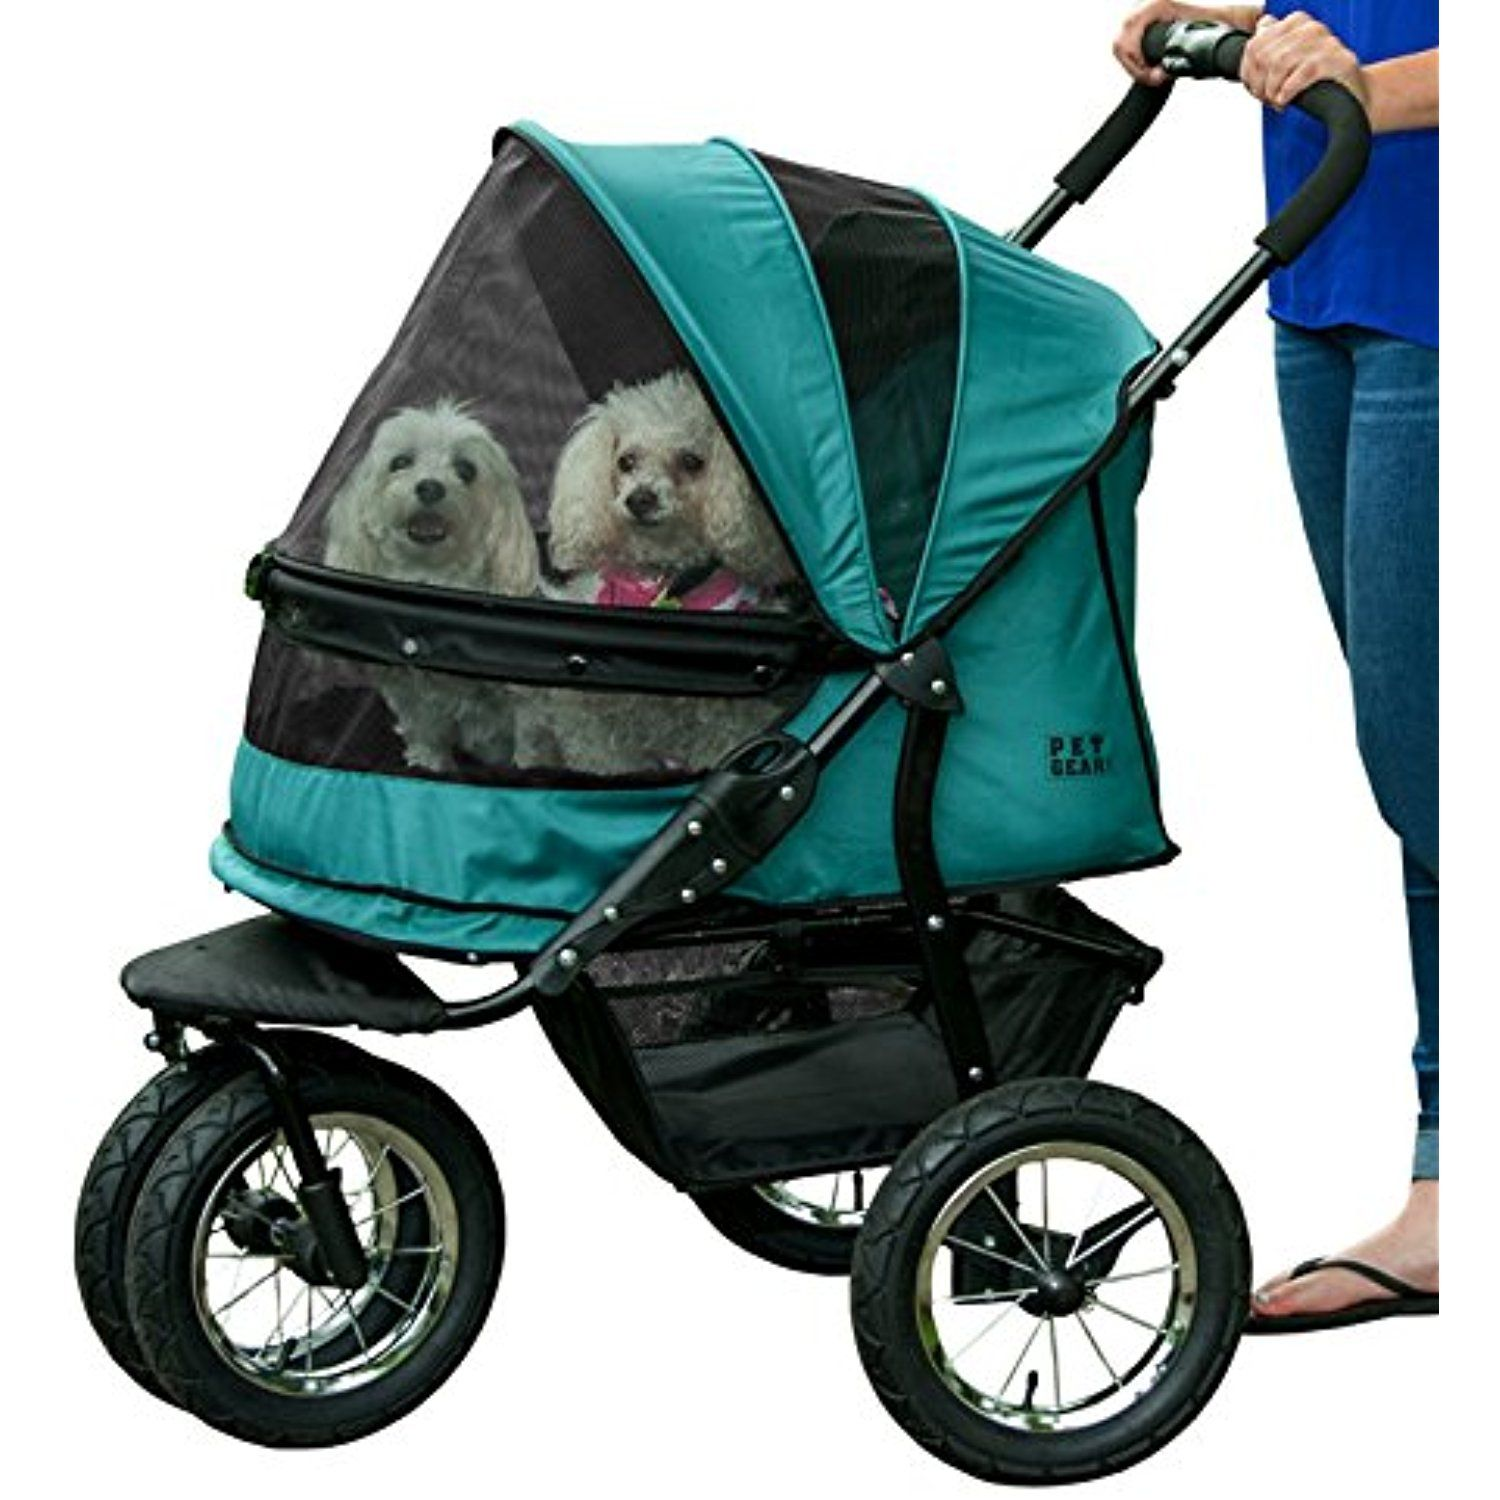 Pet Gear NoZip Double Pet Stroller, Zipperless Entry